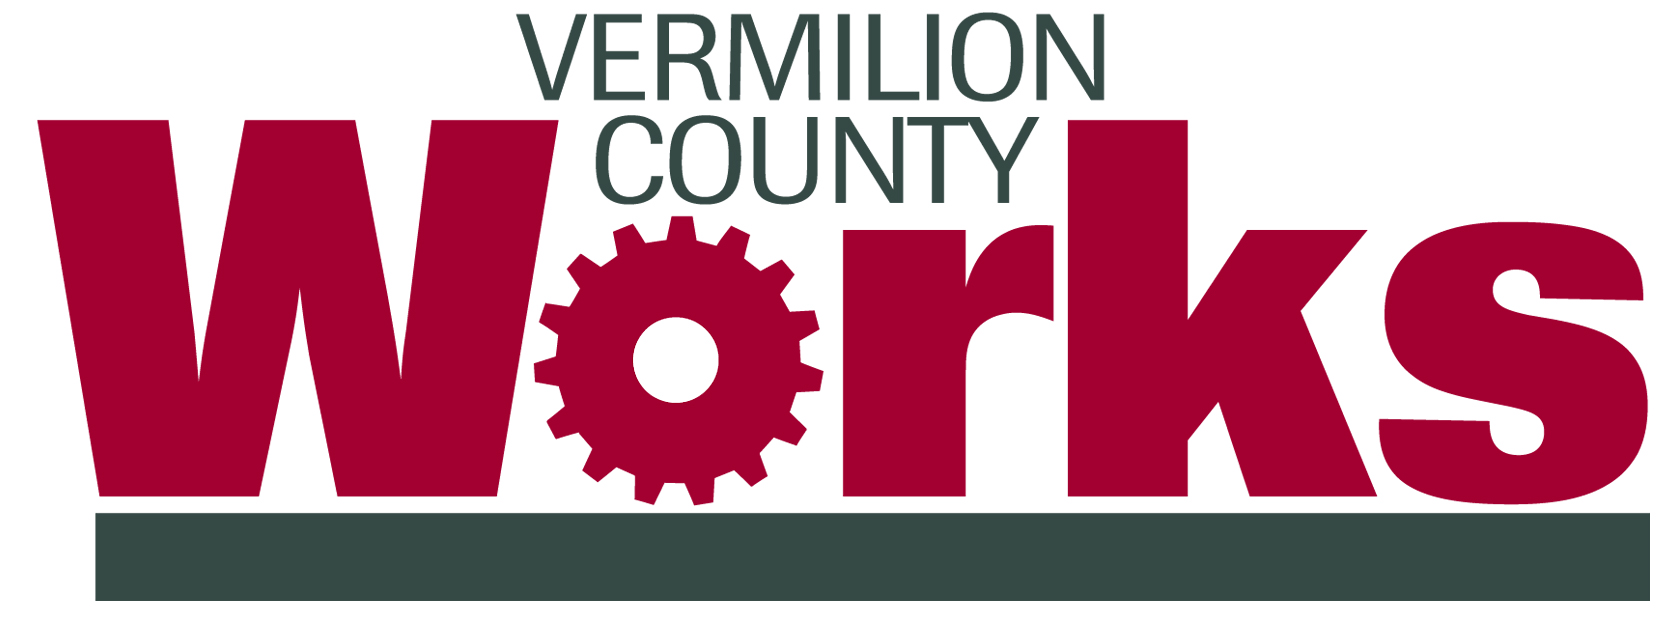 Vermillion County WorksLogo